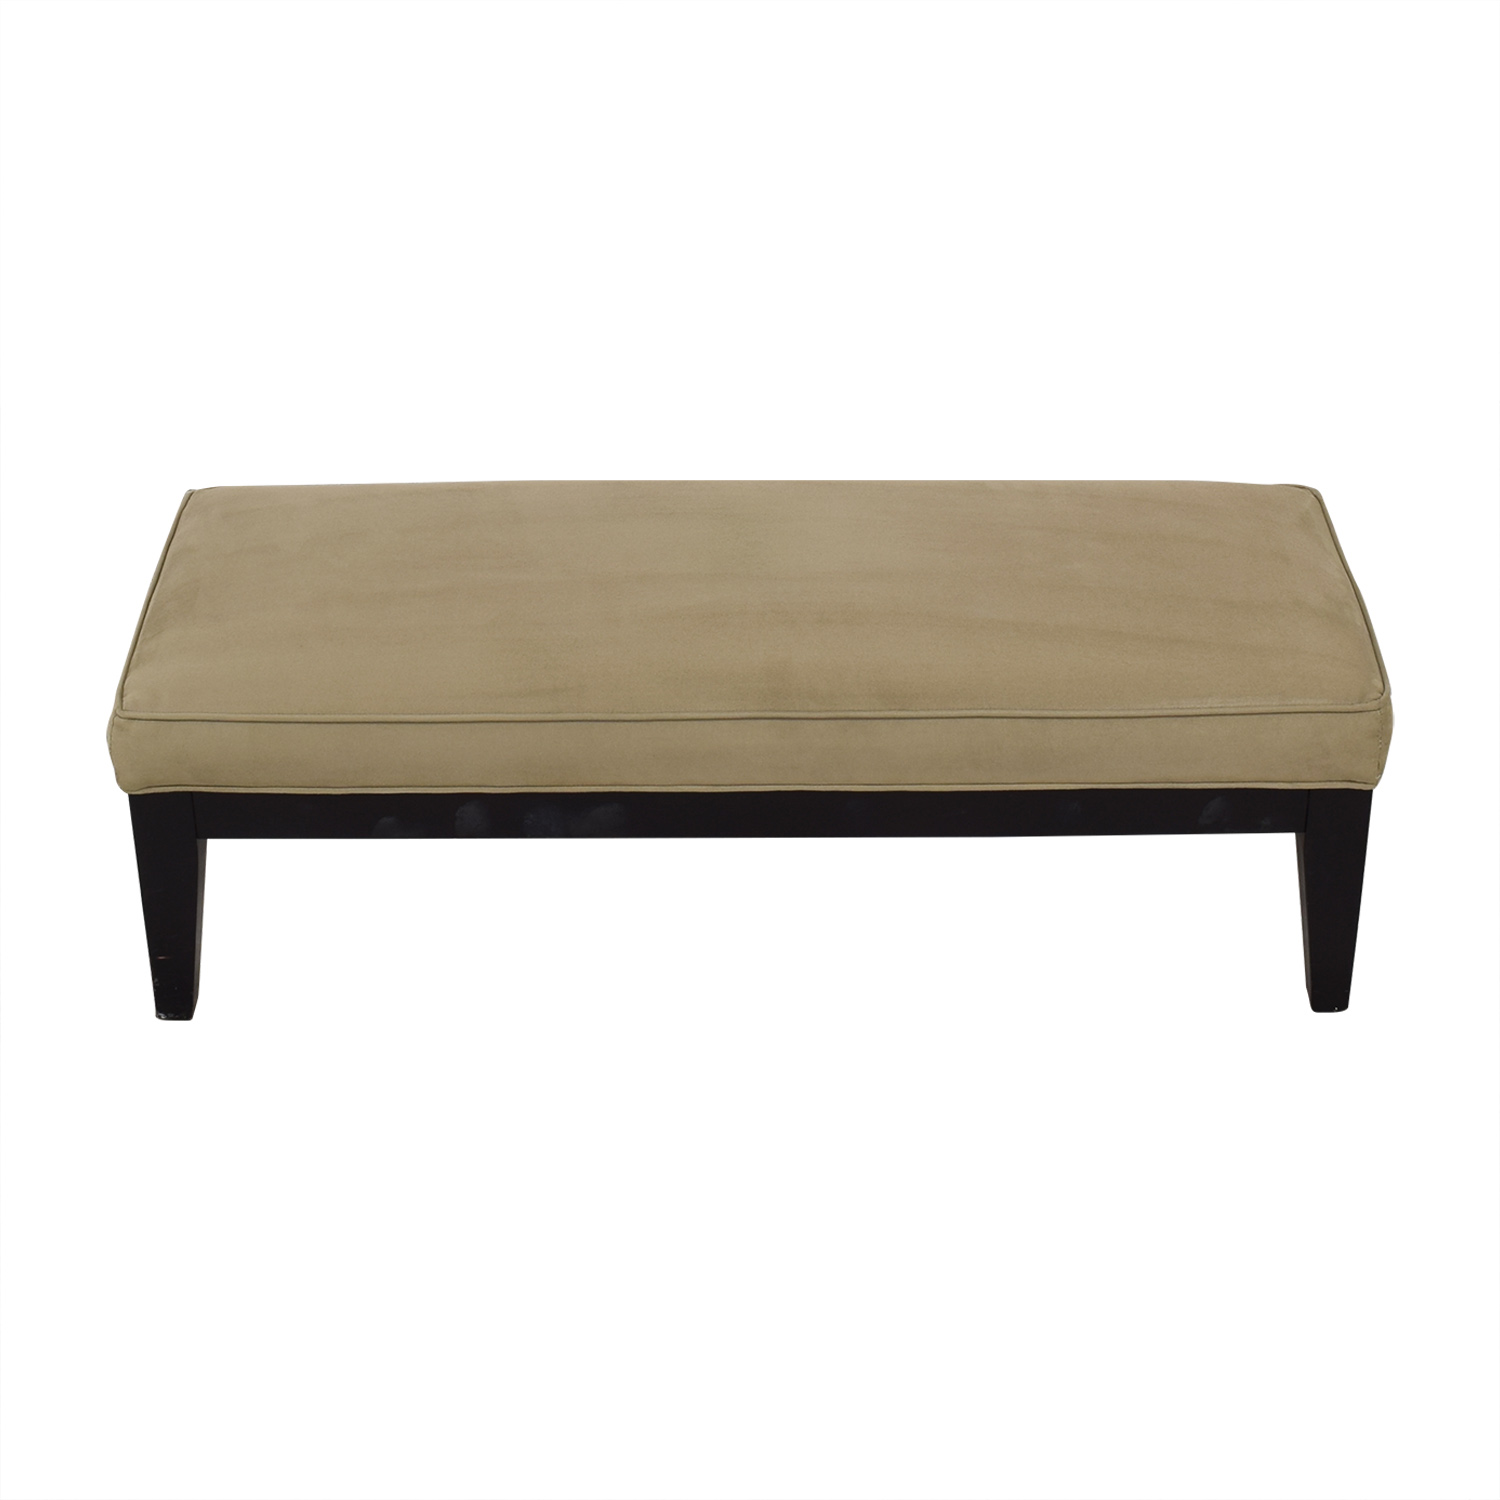 buy Room & Board Upholstered Bench Room & Board